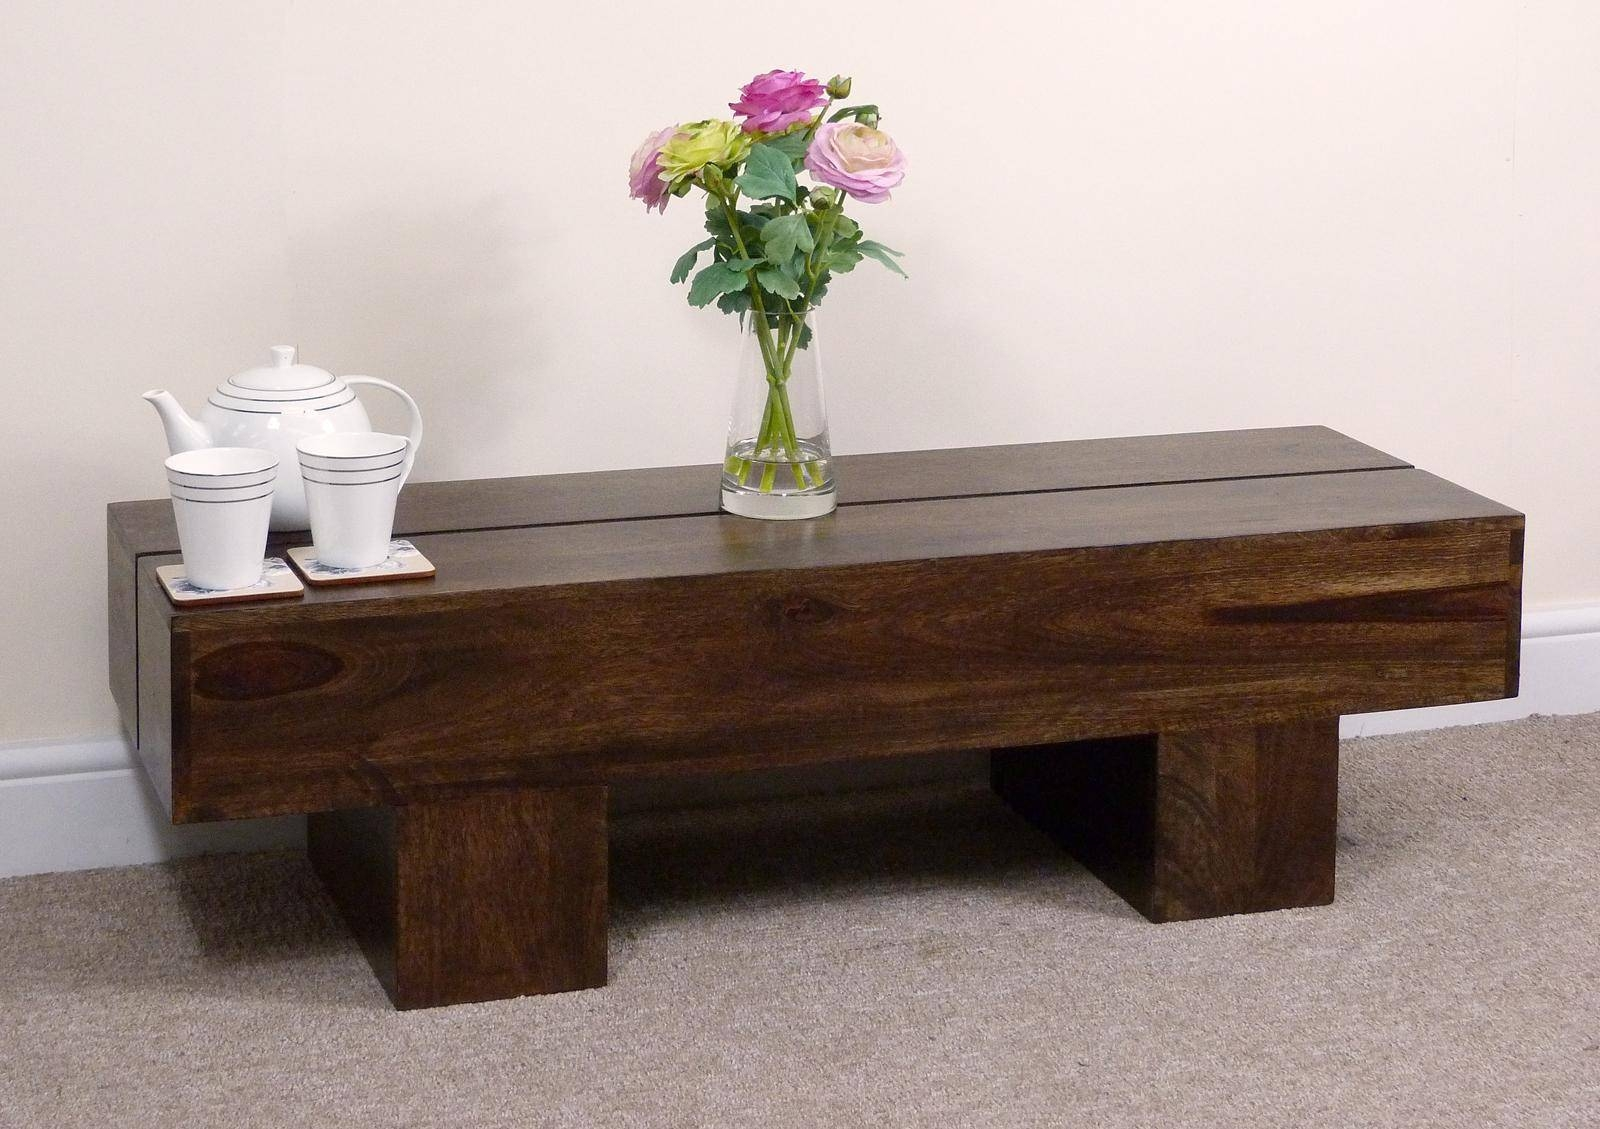 Coffee Table And Tv Unit Sets – See Here — Coffee Tables Ideas Intended For Coffee Table And Tv Unit Sets (View 9 of 30)